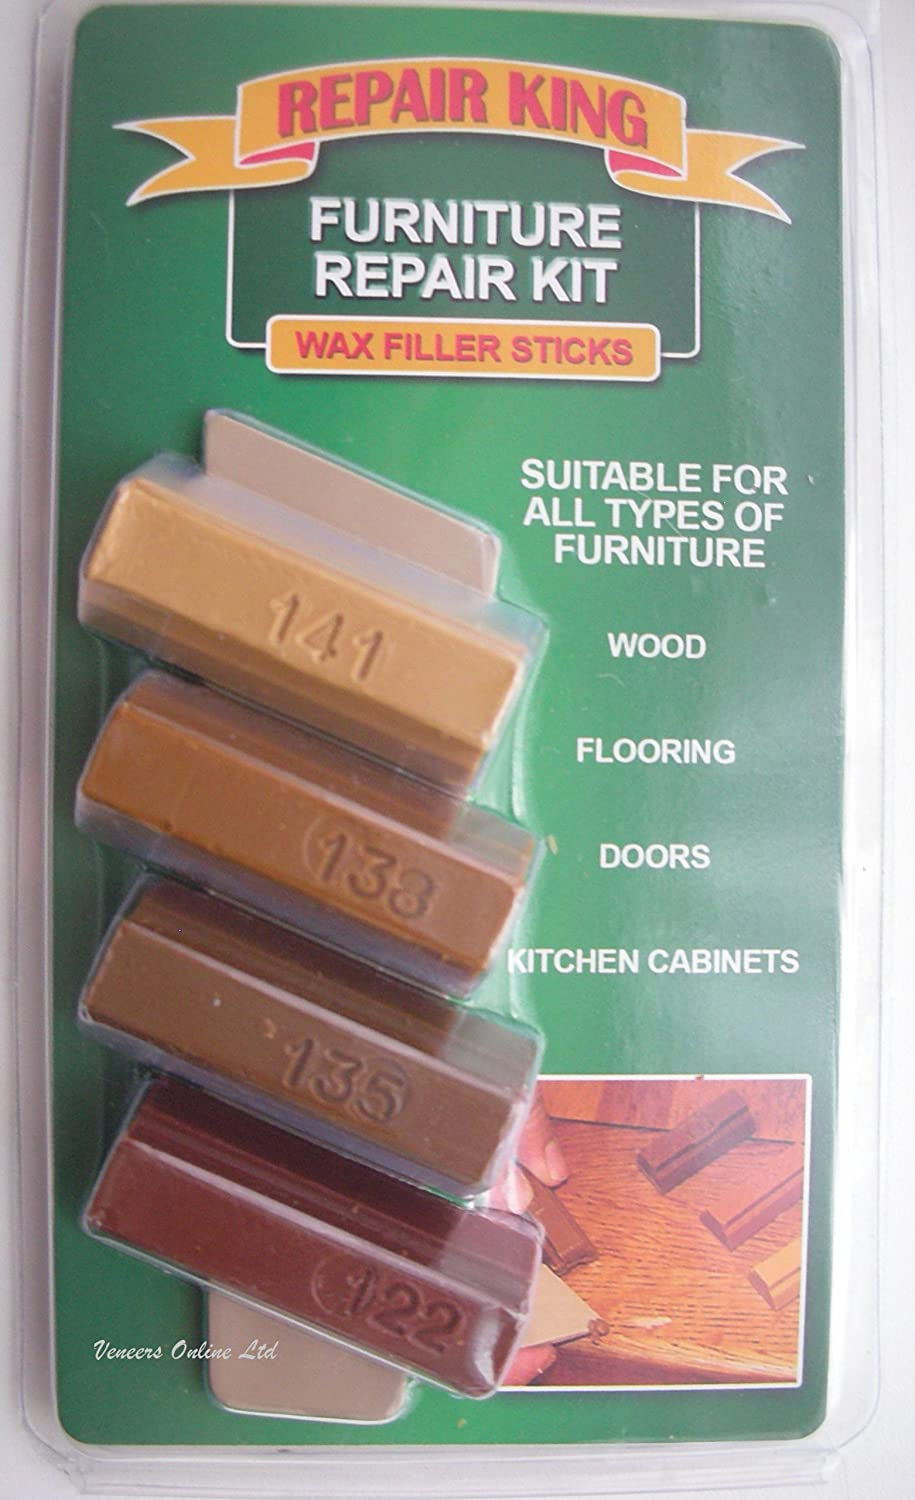 SOFT WAX STICK ASSORTMENT SOFTWAX STICKS CHOICE OF 3 *FREE DELIVERY* HAFELE